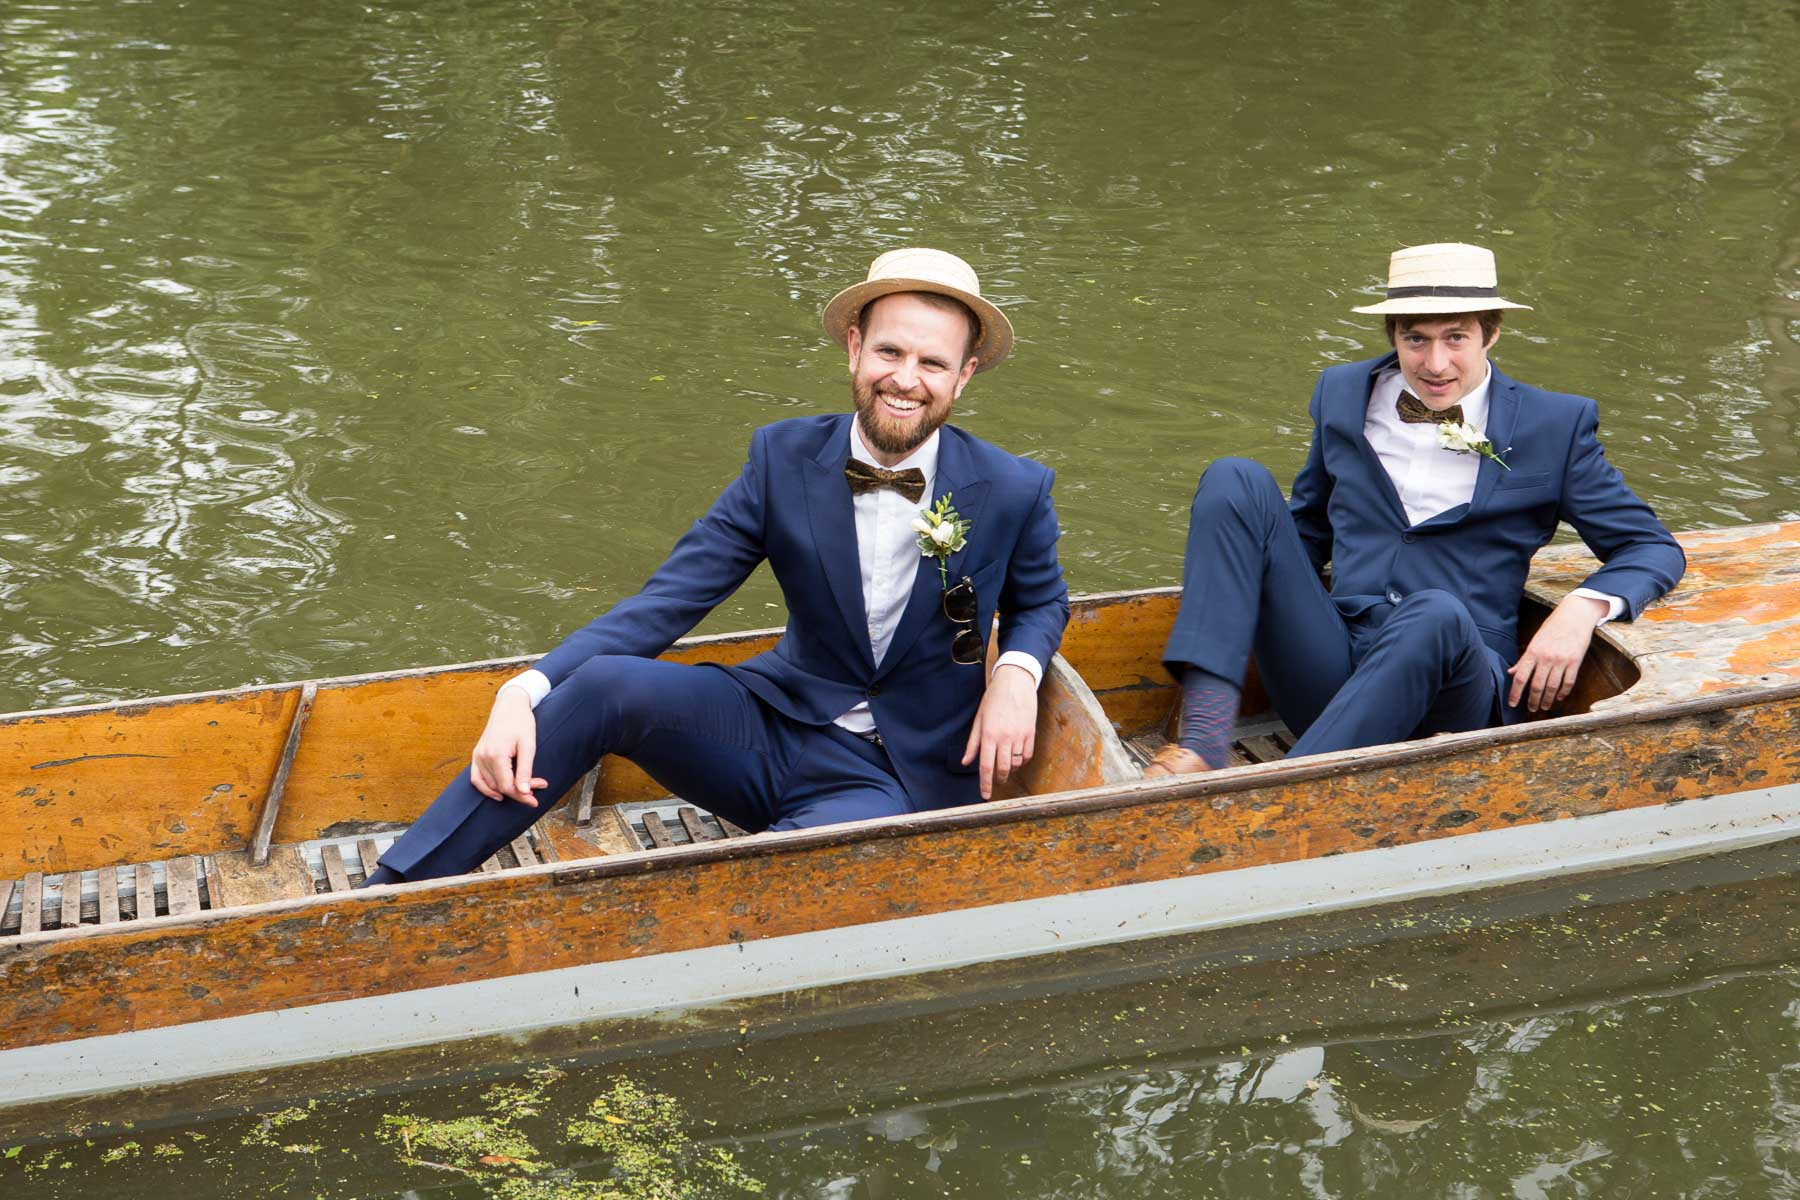 Two of the groomsmen in a punt, wearing straw boaters